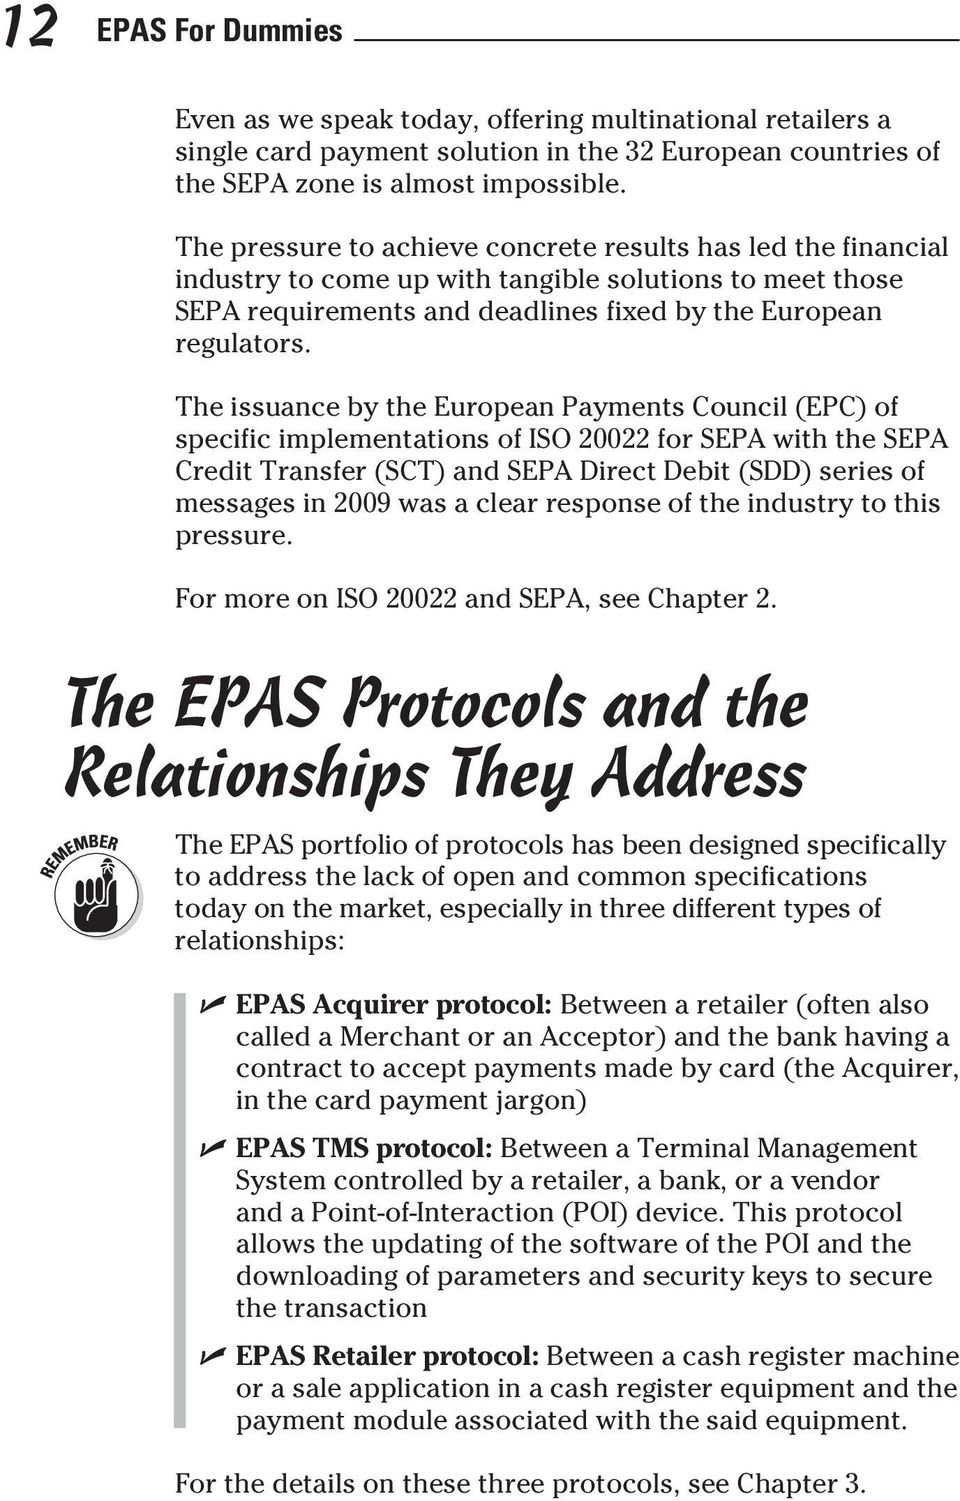 The issuance by the European Payments Council (EPC) of specific implementations of ISO 20022 for SEPA with the SEPA Credit Transfer (SCT) and SEPA Direct Debit (SDD) series of messages in 2009 was a